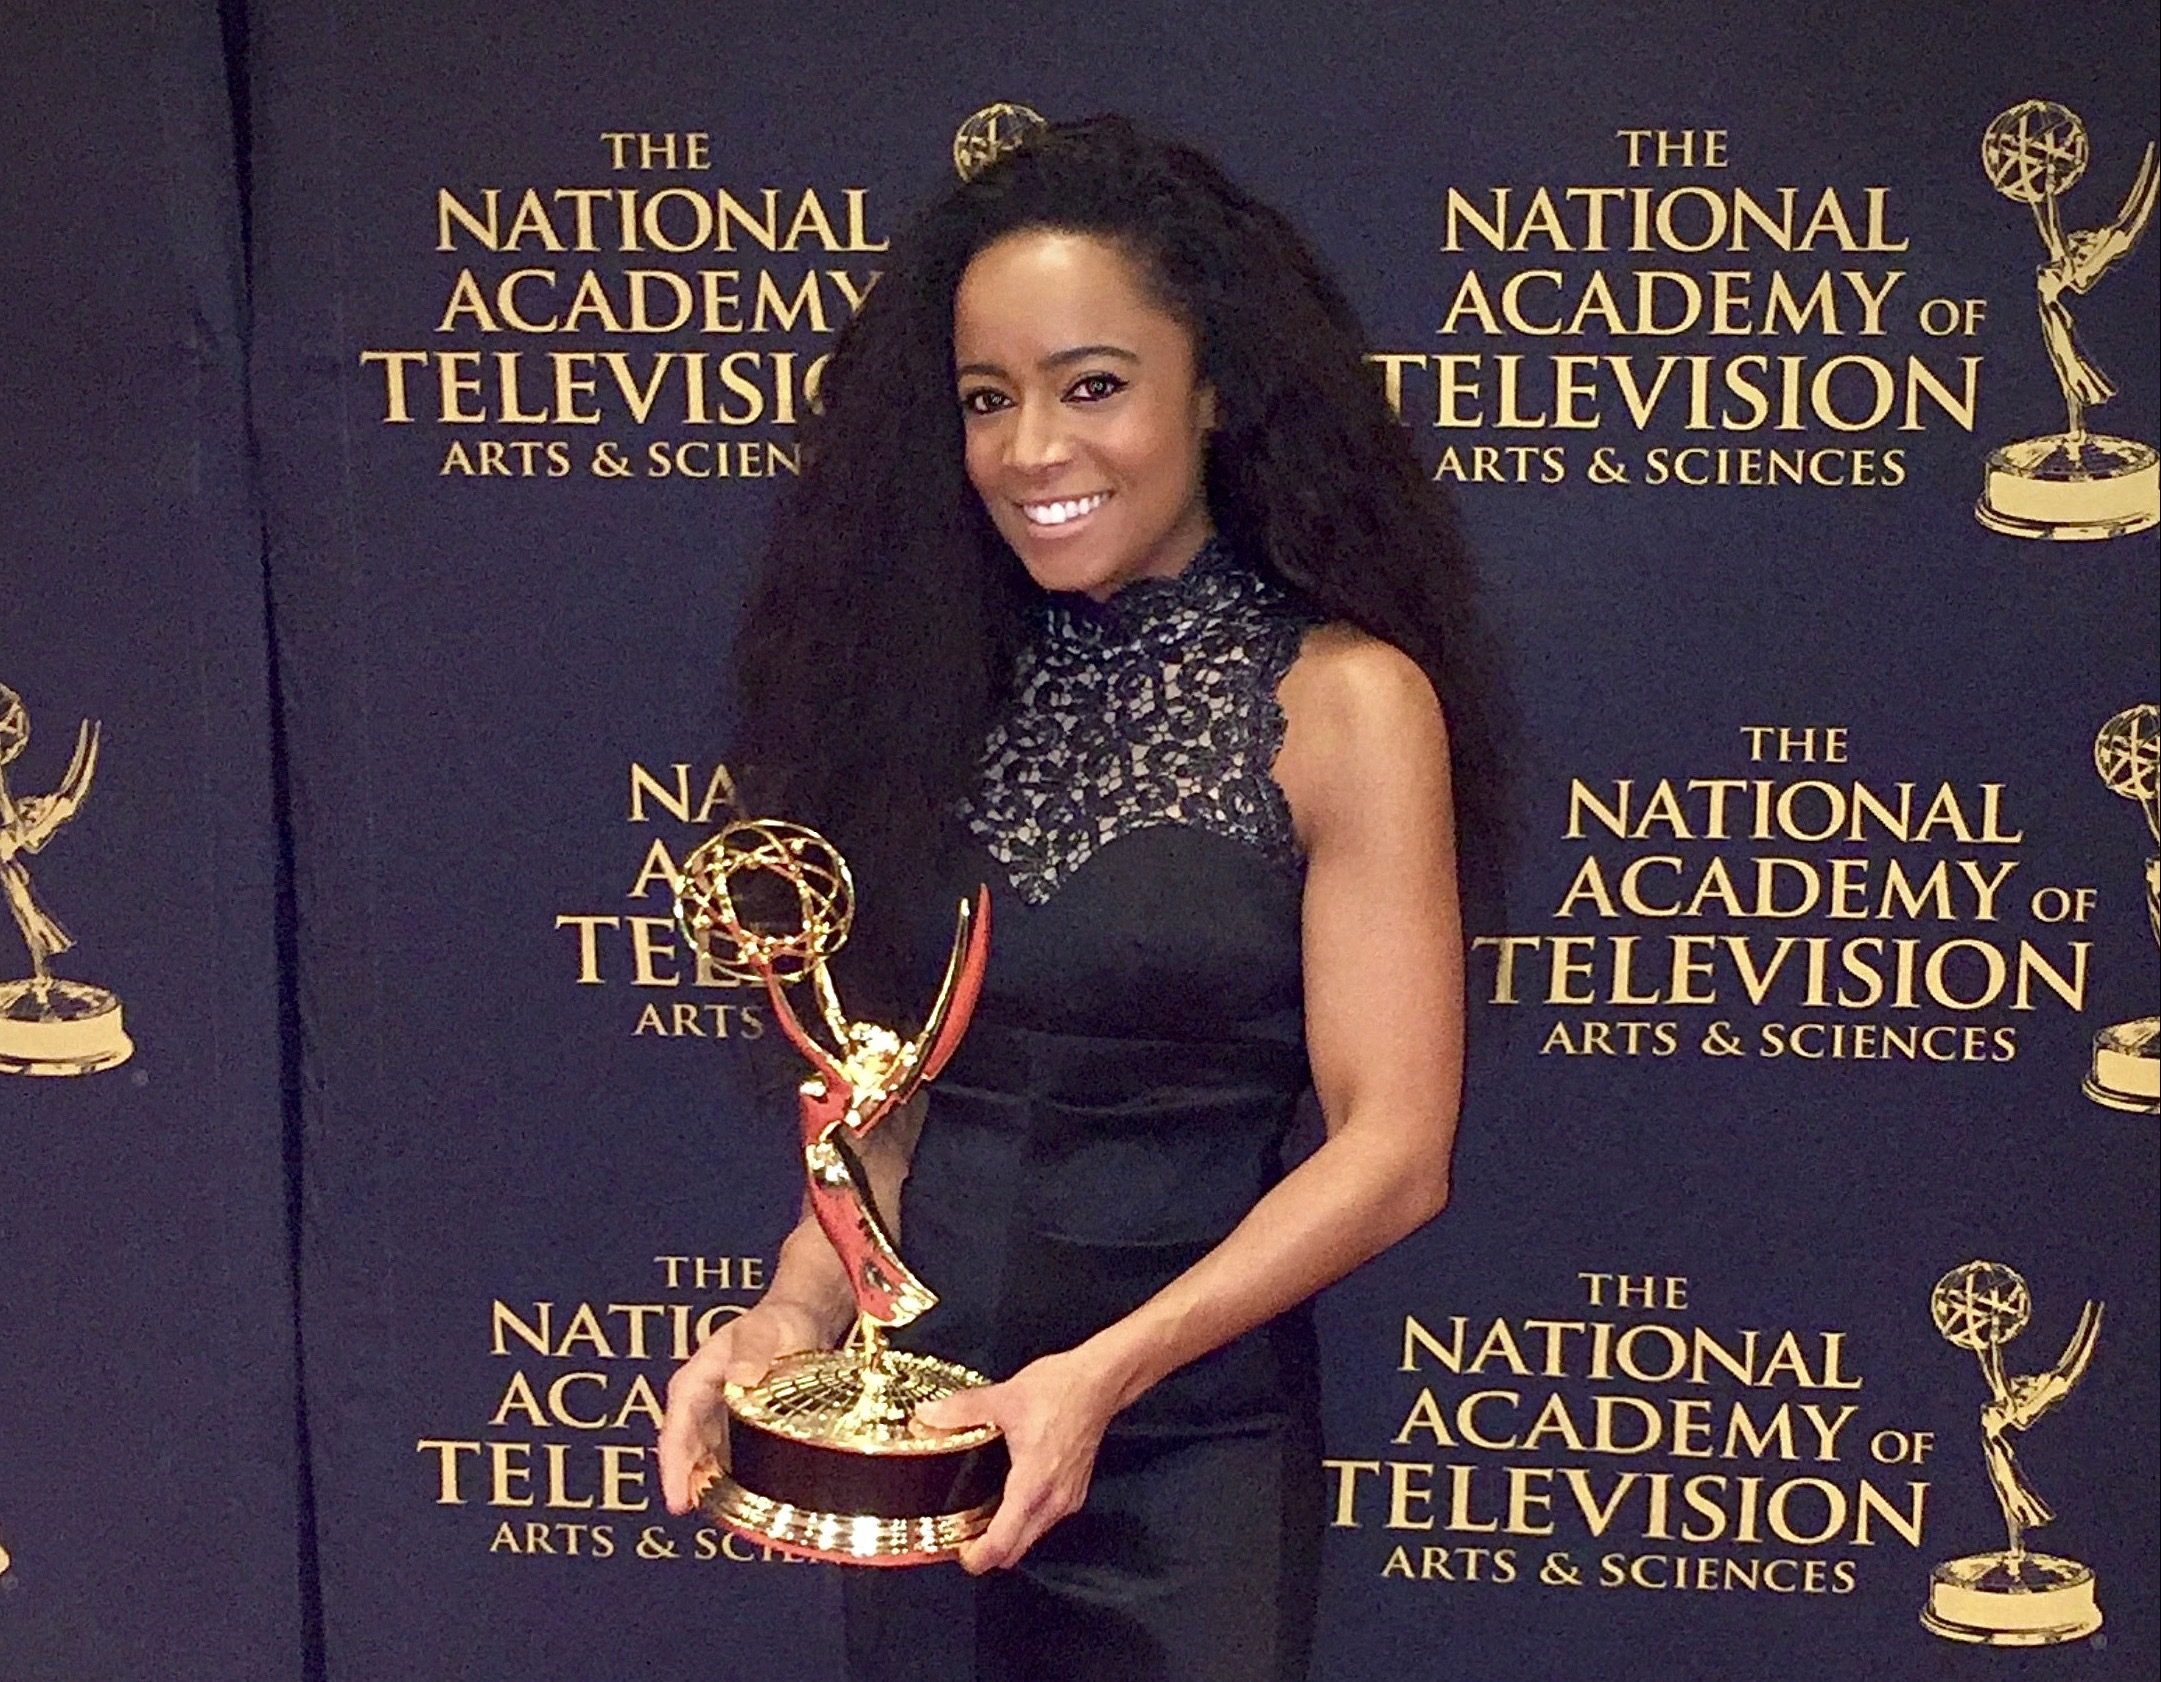 Lauren Stowell '06 holds one of her five Emmy awards on the red carpet at the awards ceremony.